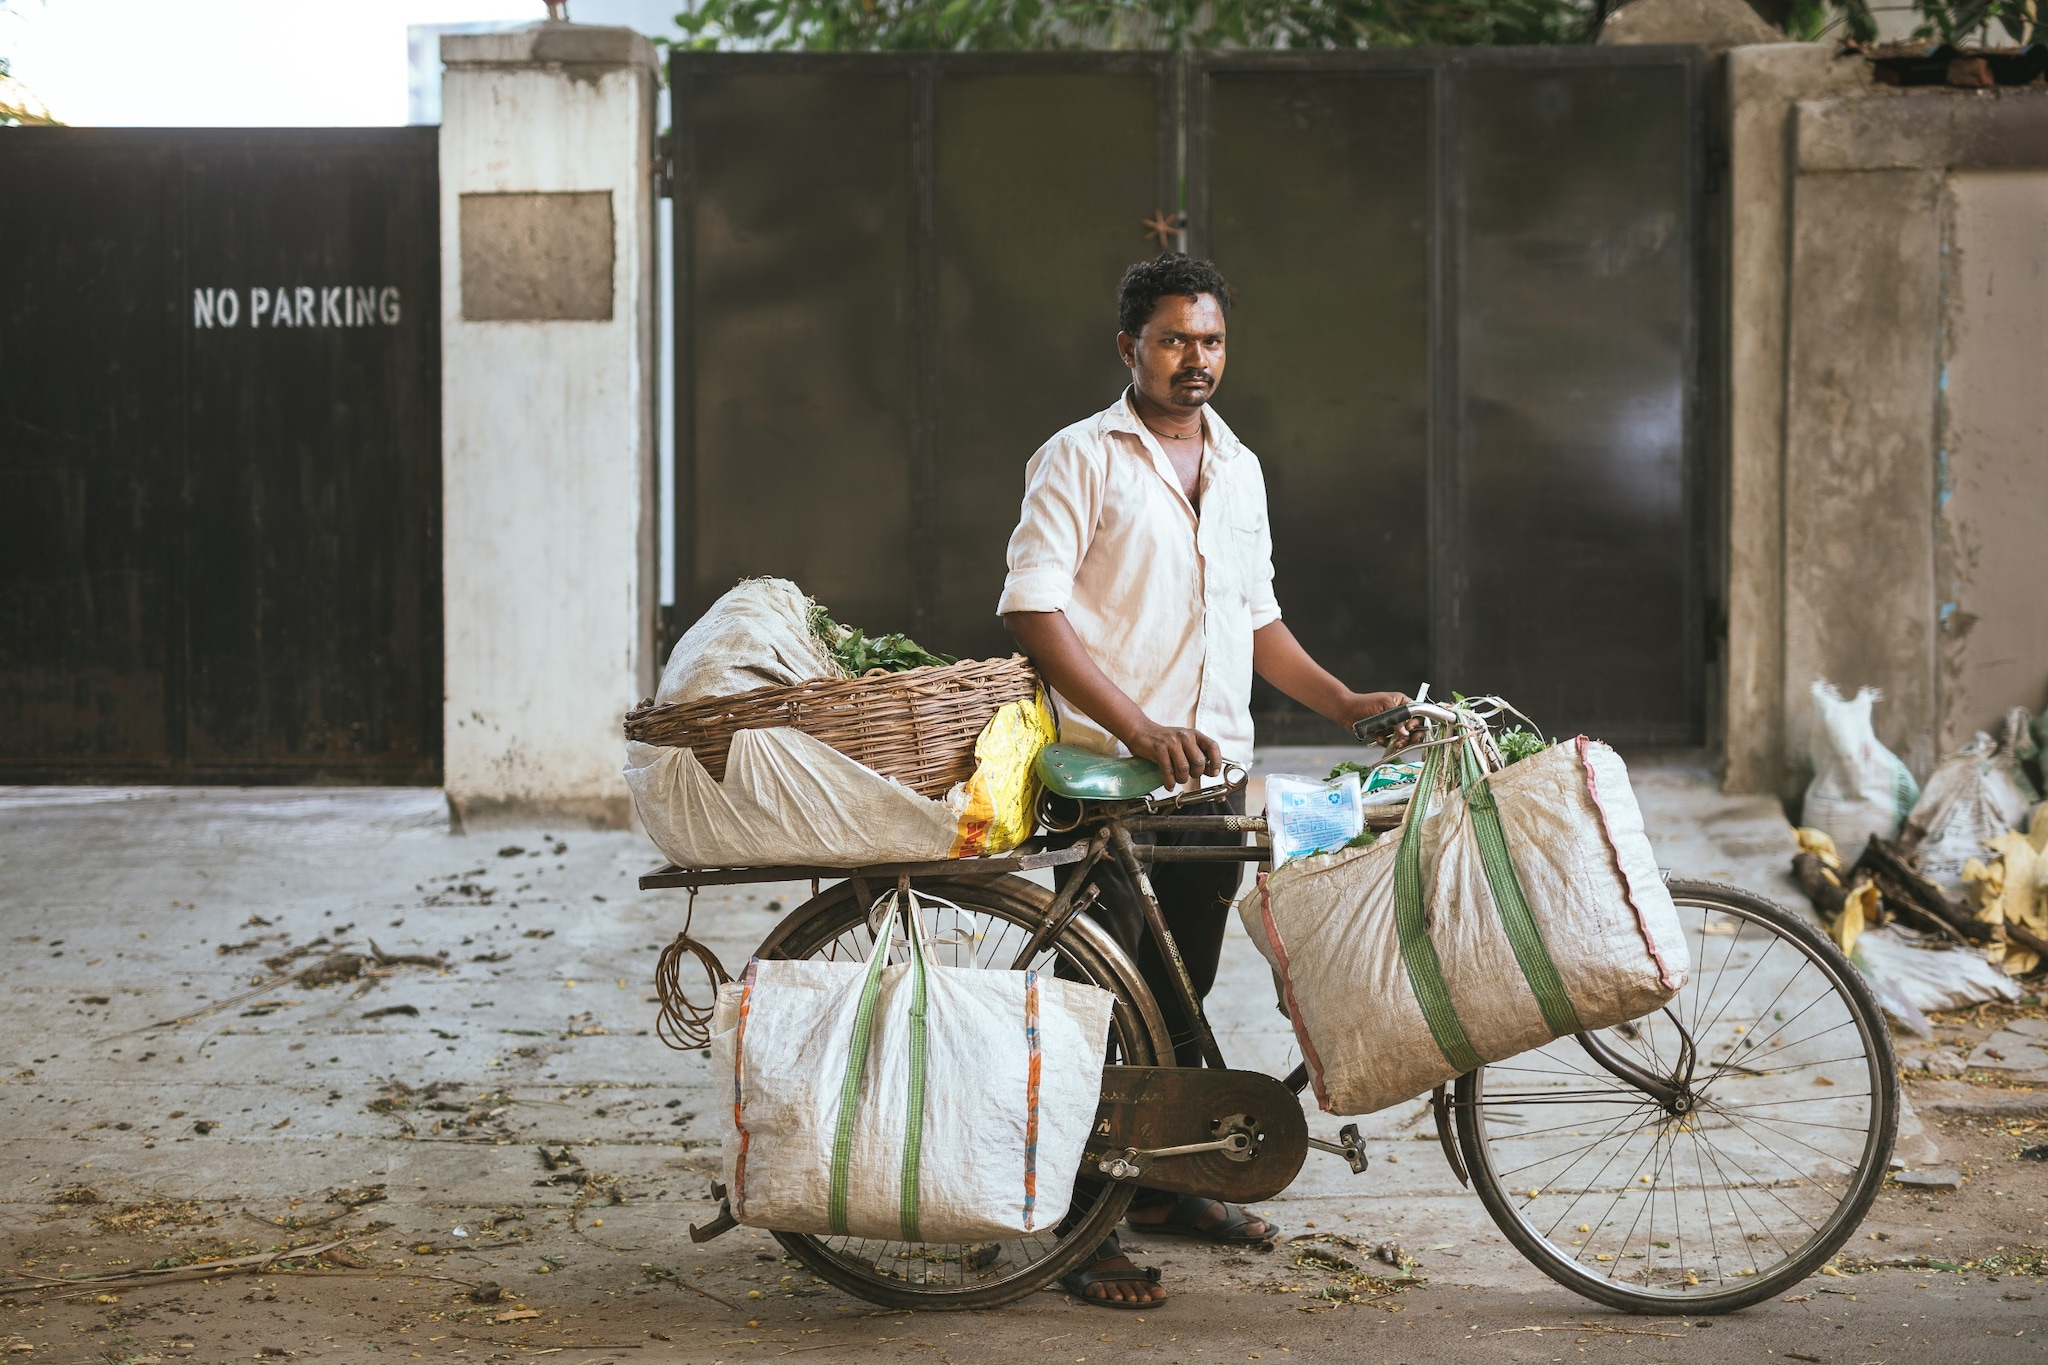 The Vegetable Seller. Ramu has been selling green leafy vegetables in the same spot for 12 years and has sales of up to Rs 1,000 a day.